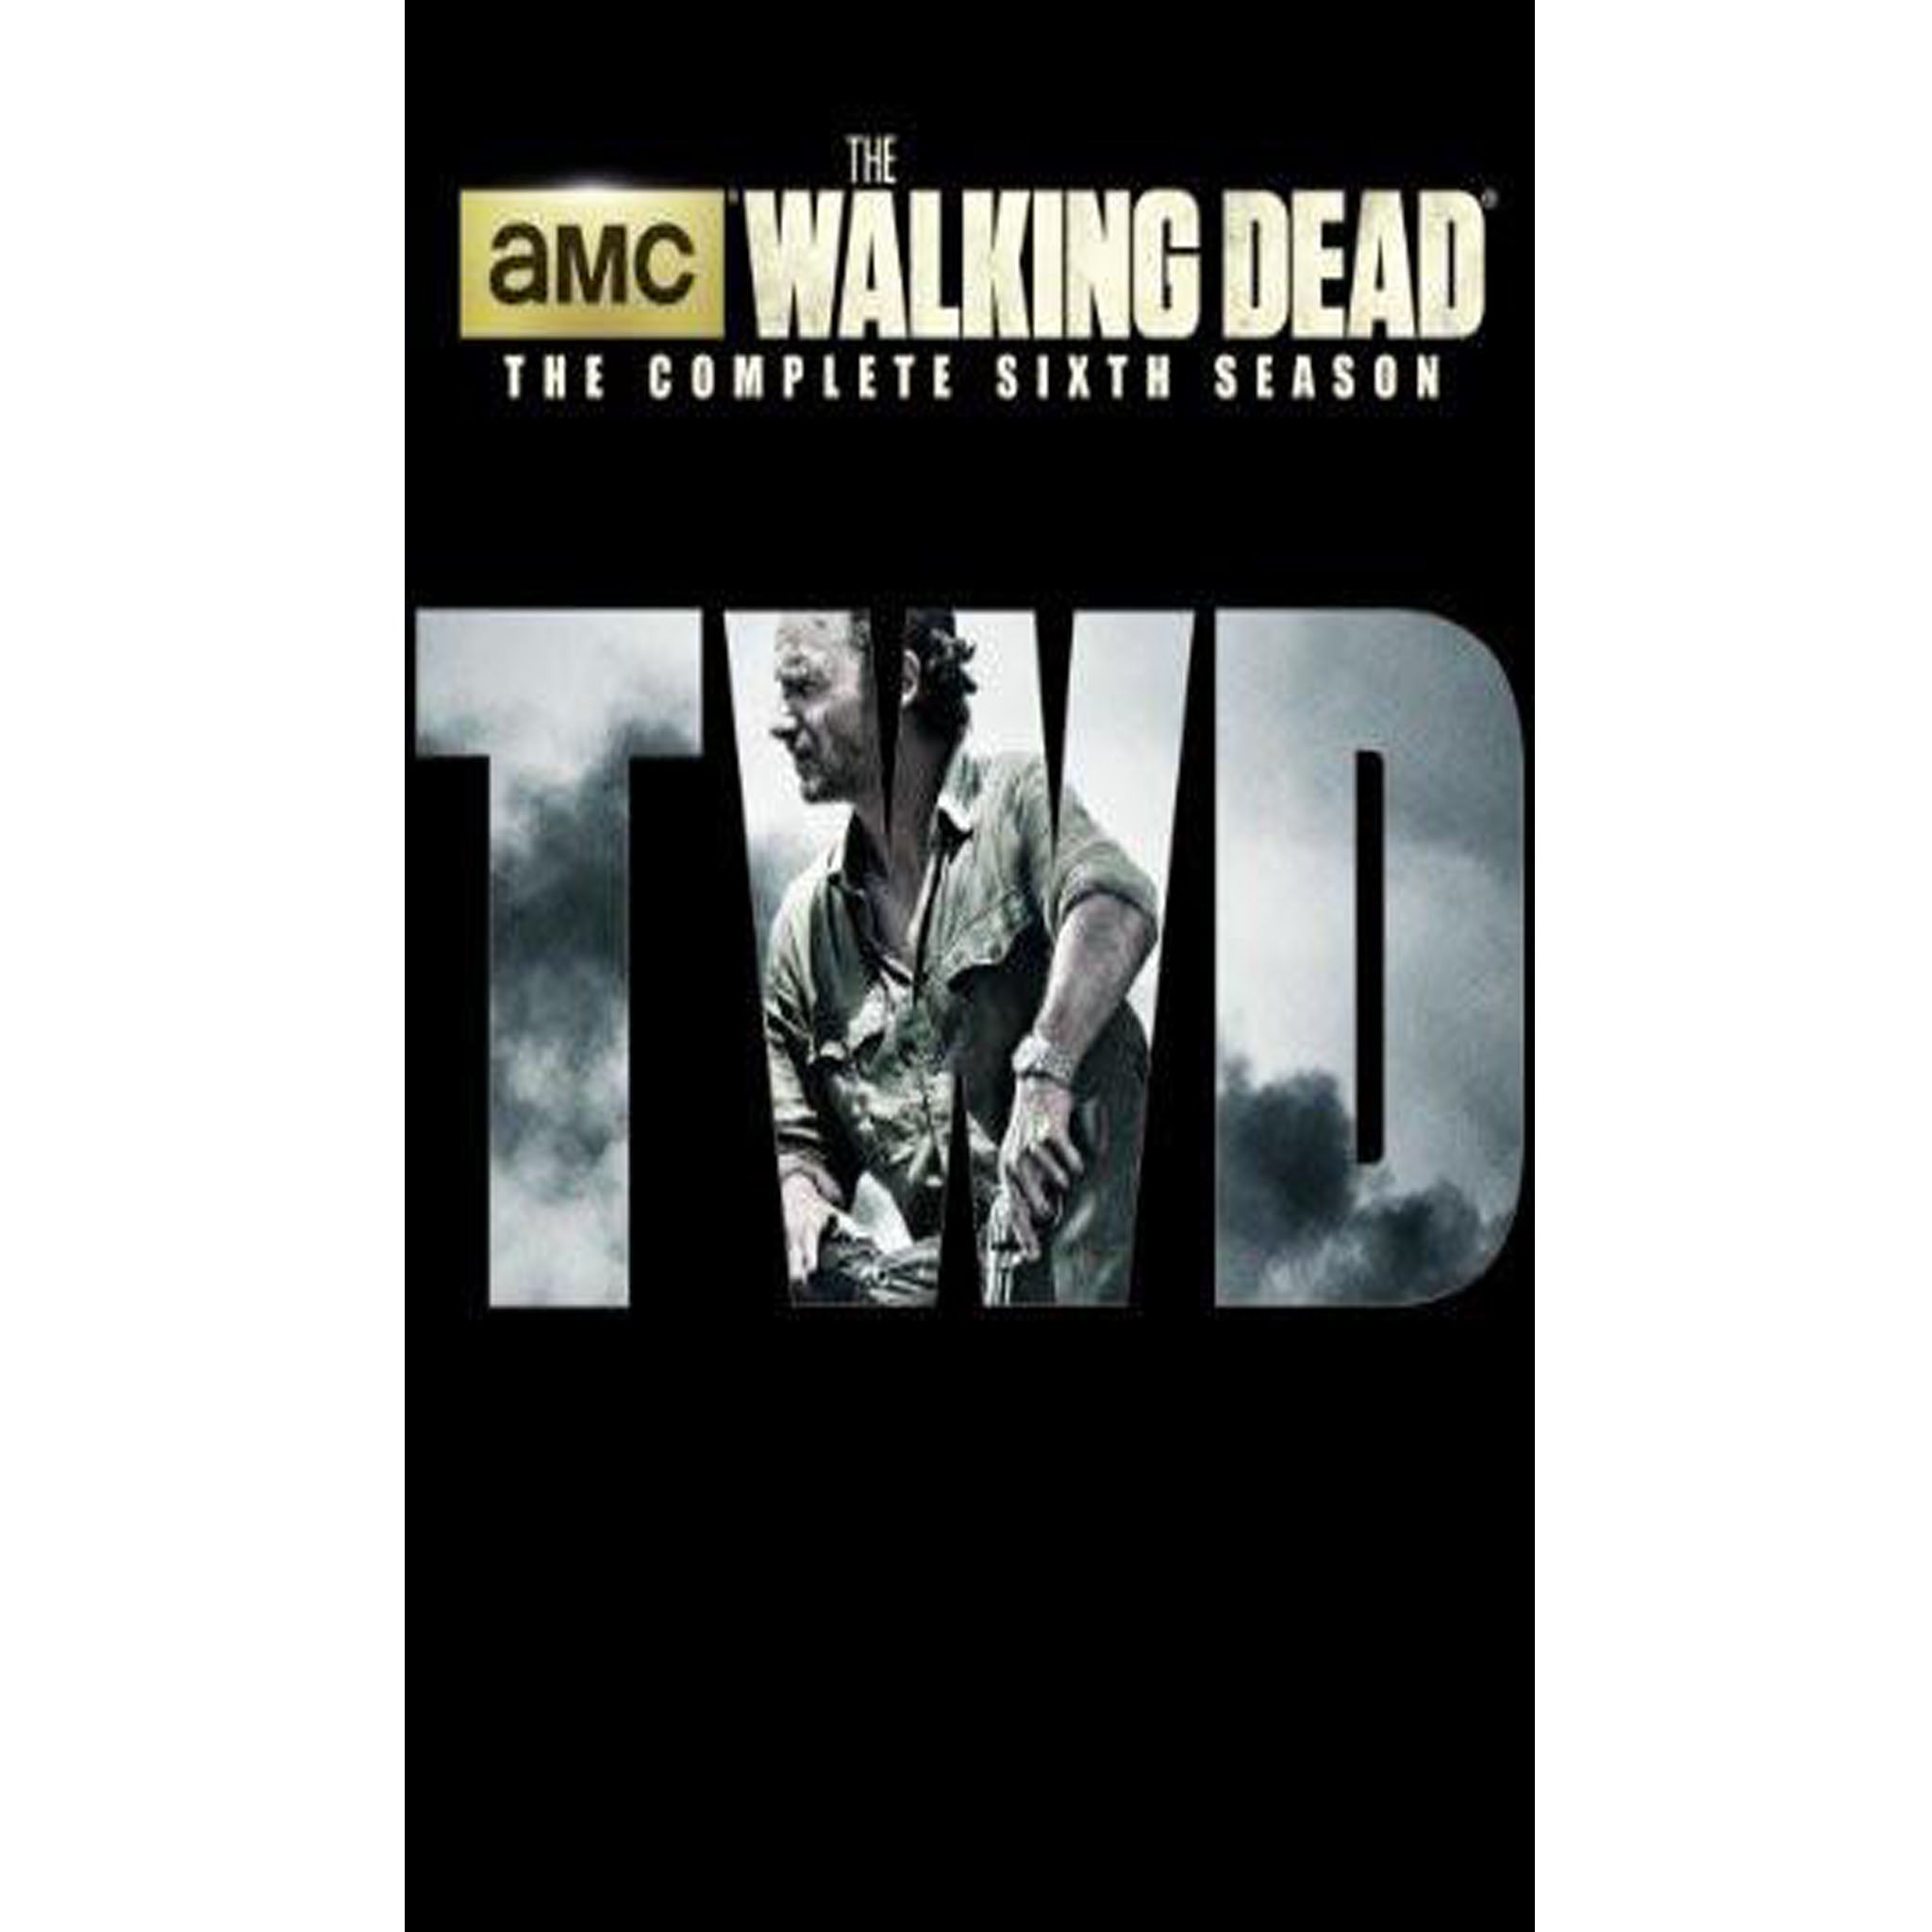 The Walking Dead Season 6 (DVD) - DVDsHQ